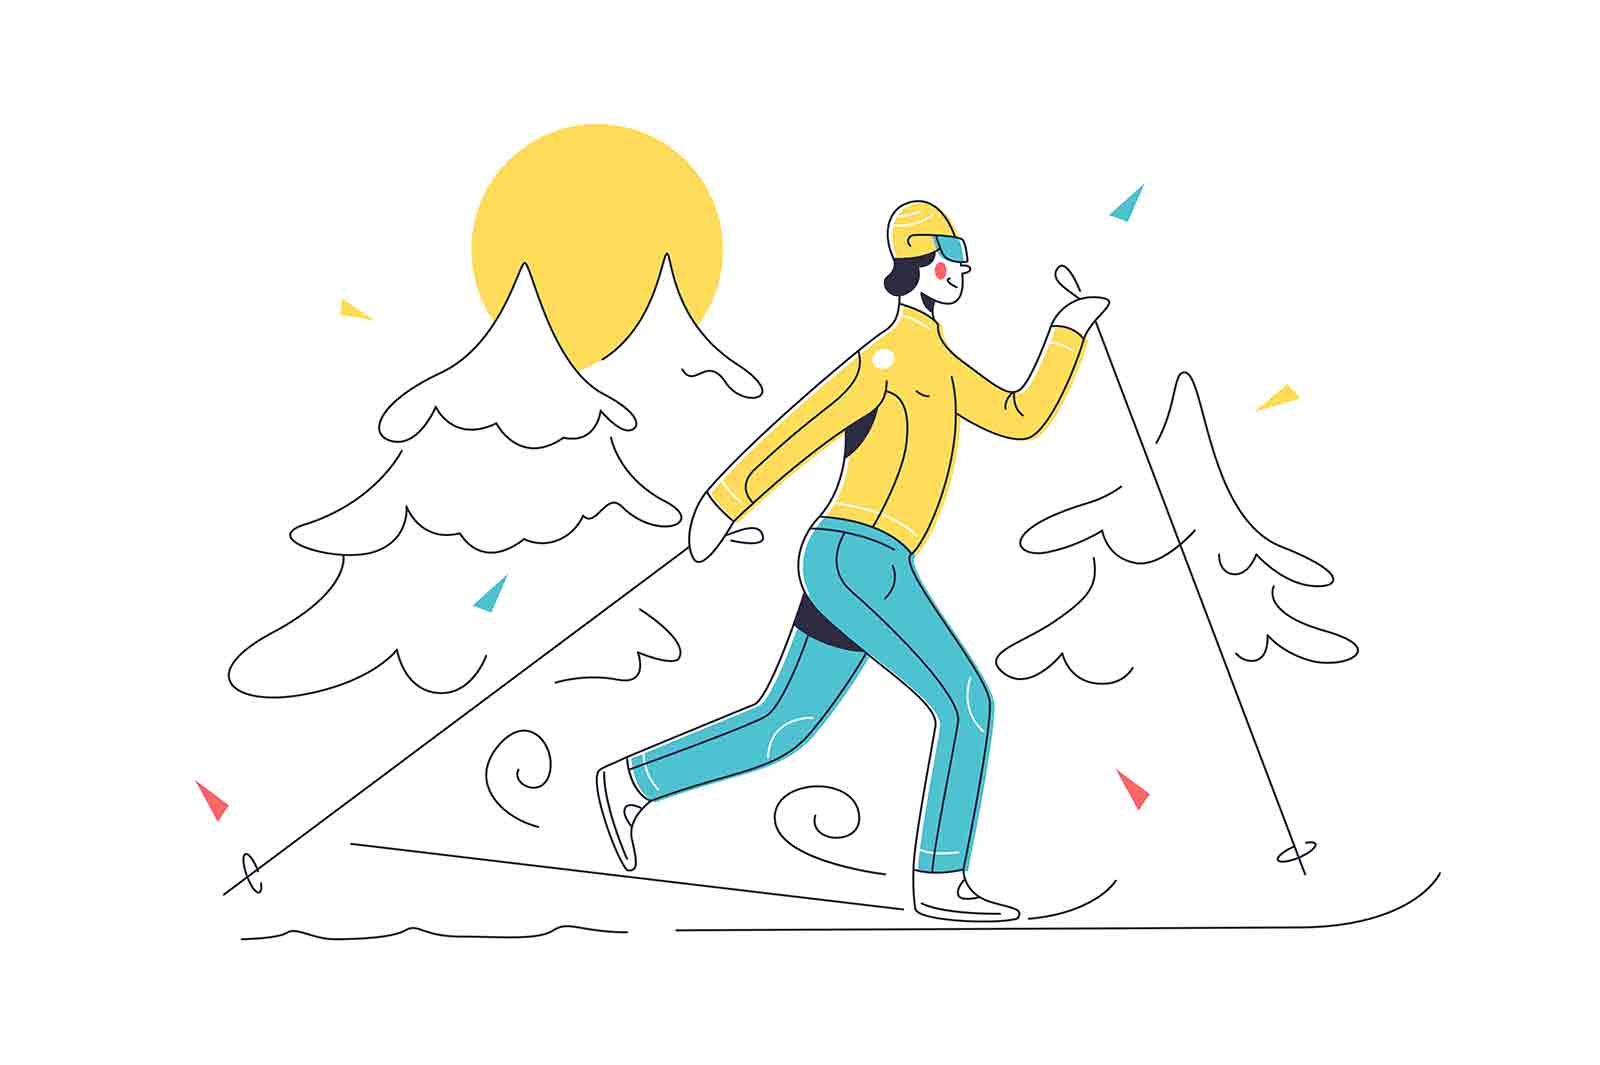 Skiing in mountains with equipment vector illustration. Ski resort landscape in snow linear. Ski, active sport, winter season, hobby concept